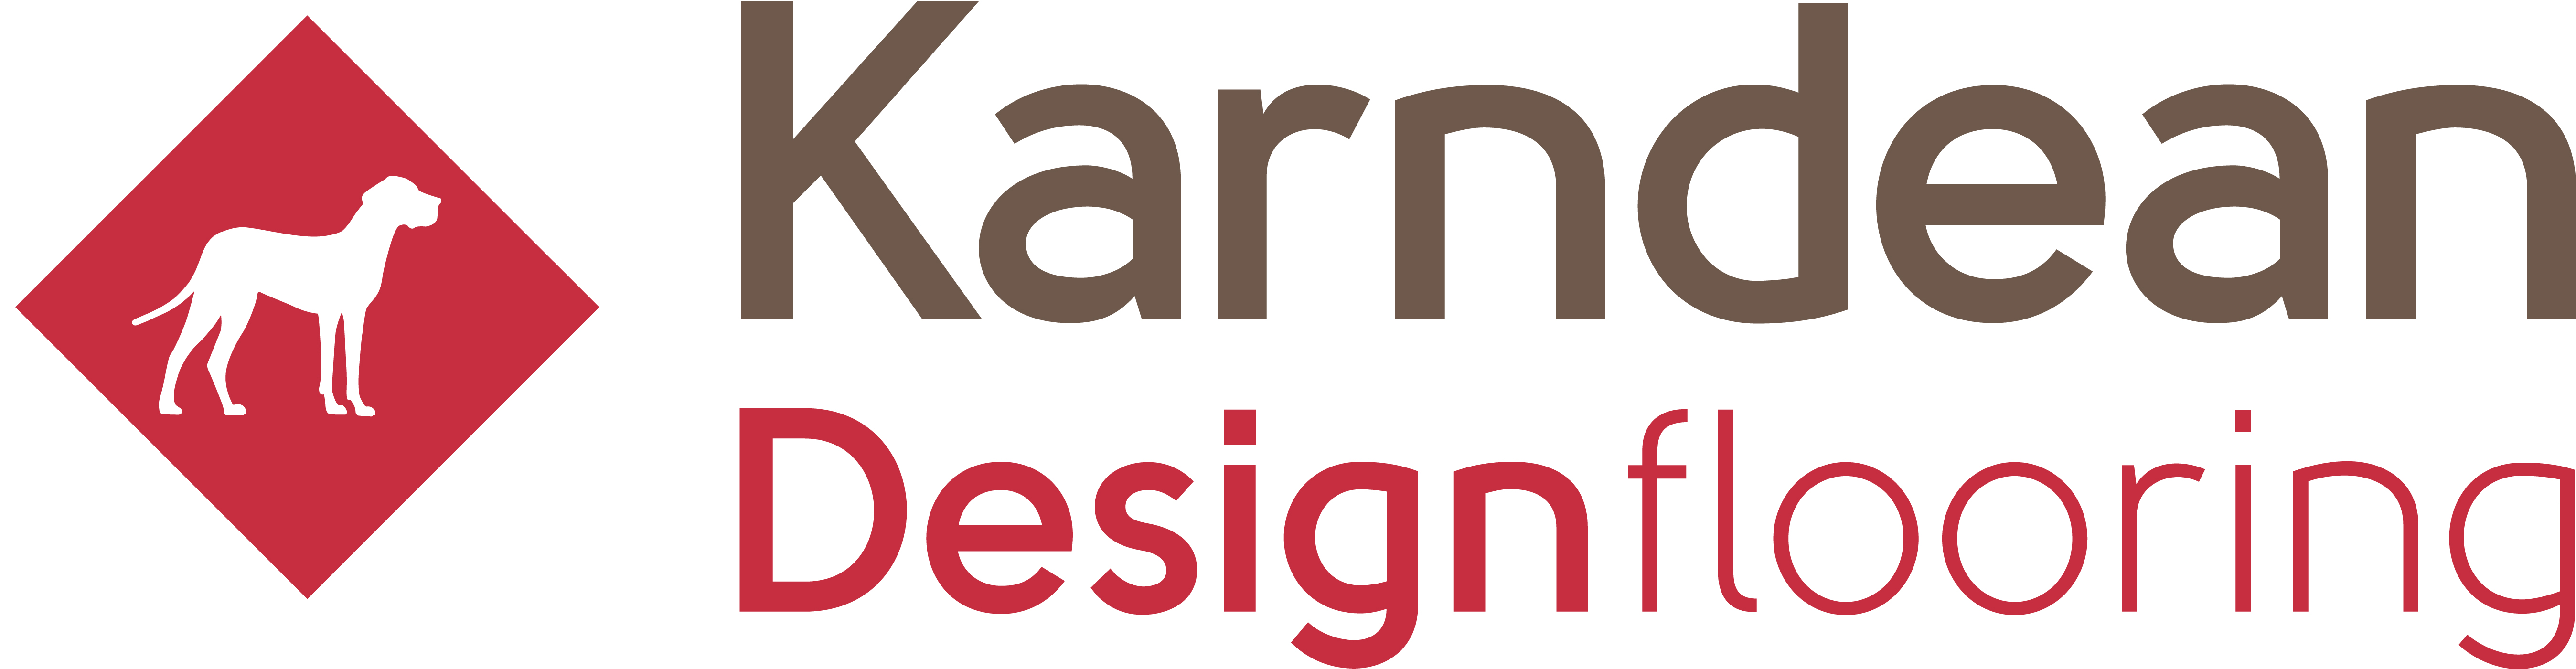 1973 Recorded The Day That Karndean Started Life As A Small Family Business Now We Are One Of Worlds Most Renowned And Respected Luxury Flooring